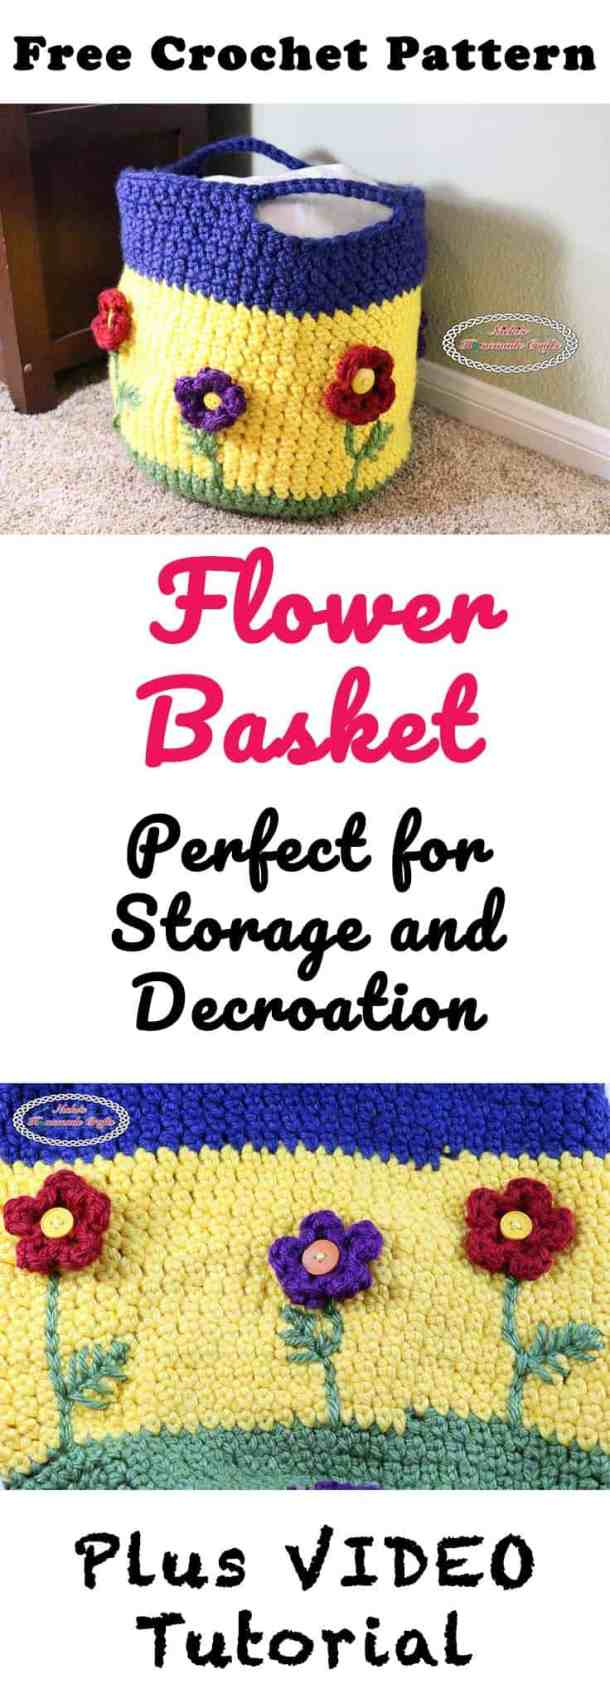 Flower Basket Free Crochet Pattern by Nicki's Homemade Crafts #crochet #flower #basket #spring #button